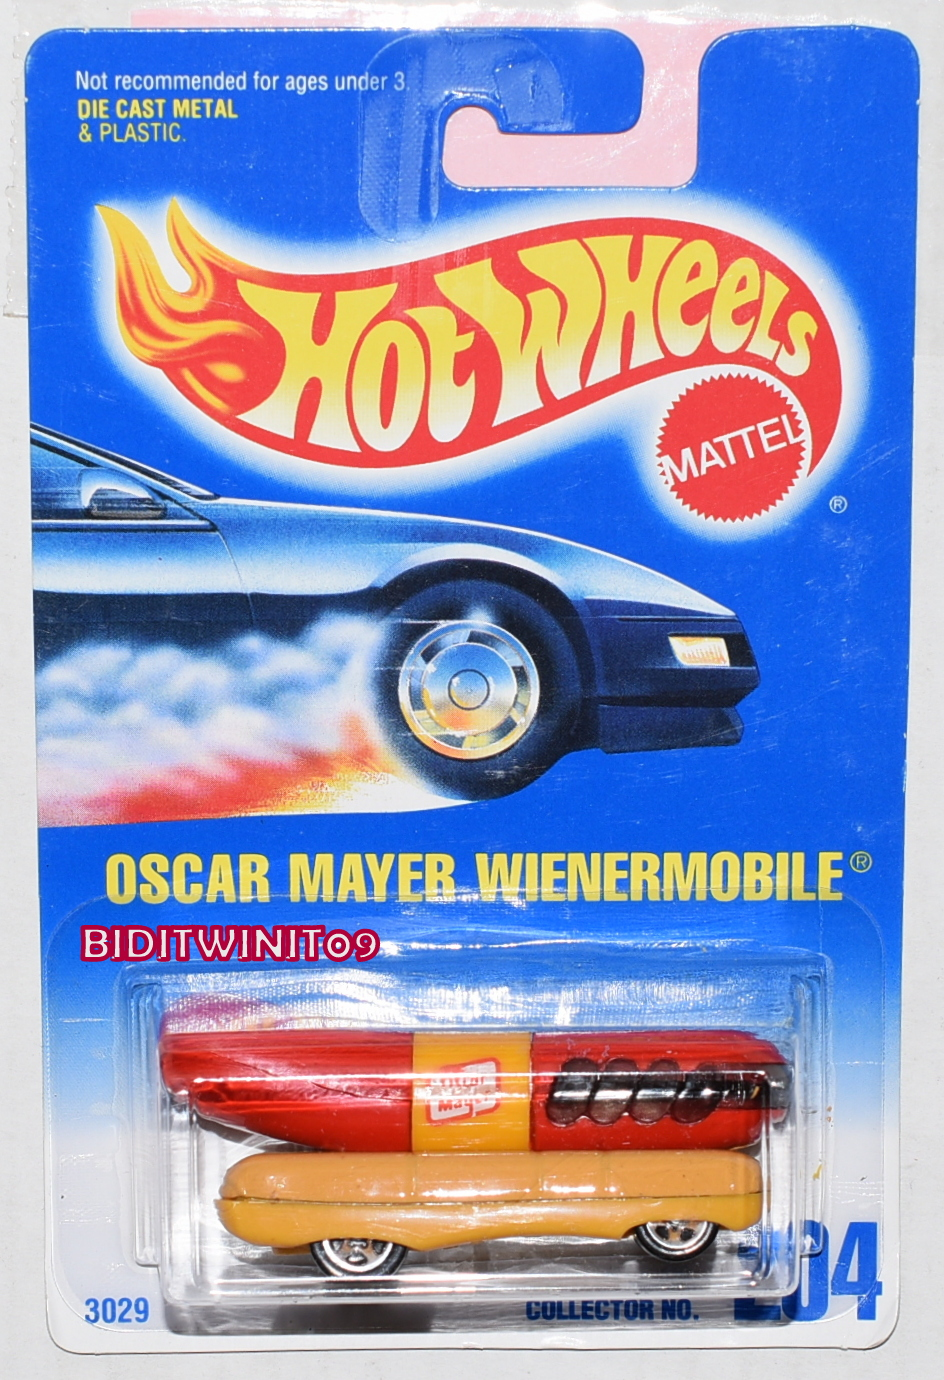 HOT WHEELS 1991 BLUE CARD OSCAR MAYER WIENERMOBILE #204 W/ 5 SP WHEELS E+